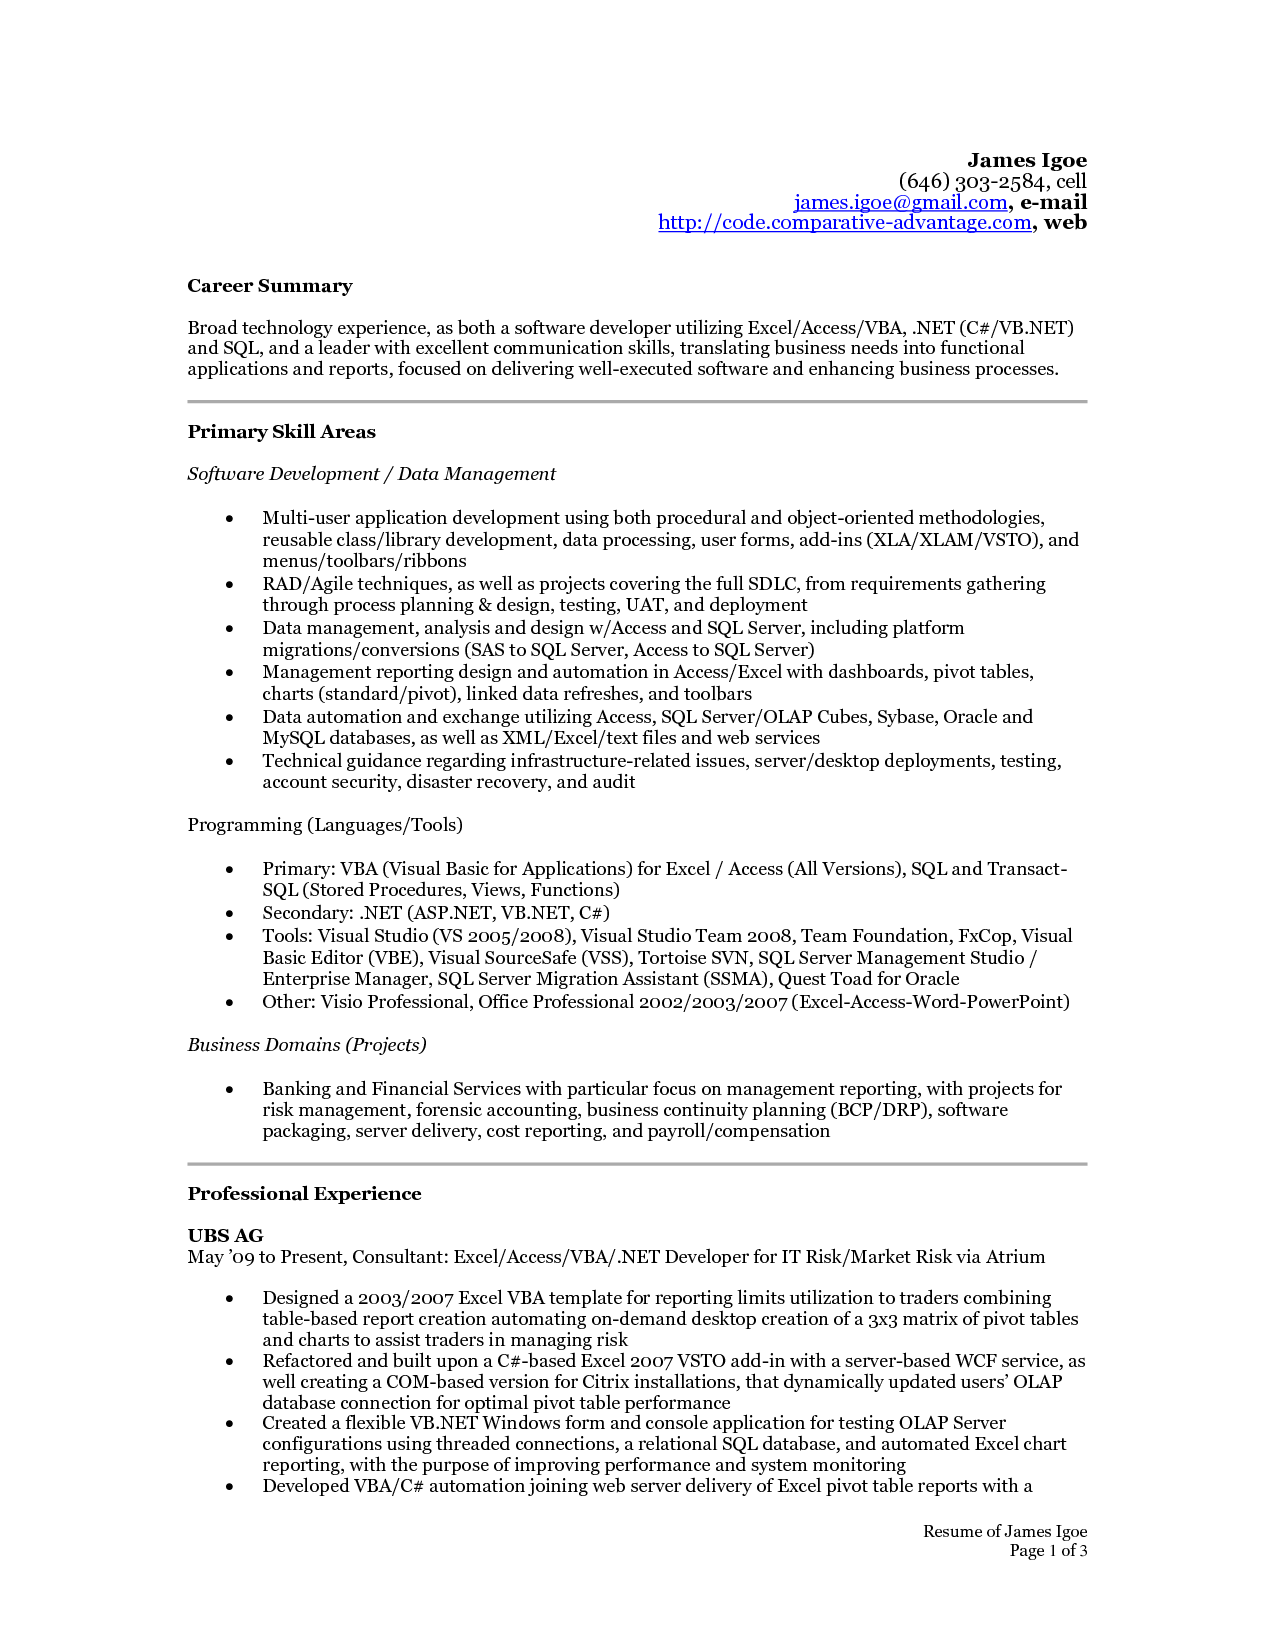 criminal justice resume uses summary section of the qualifications bartender resumes bartender resume skills list job